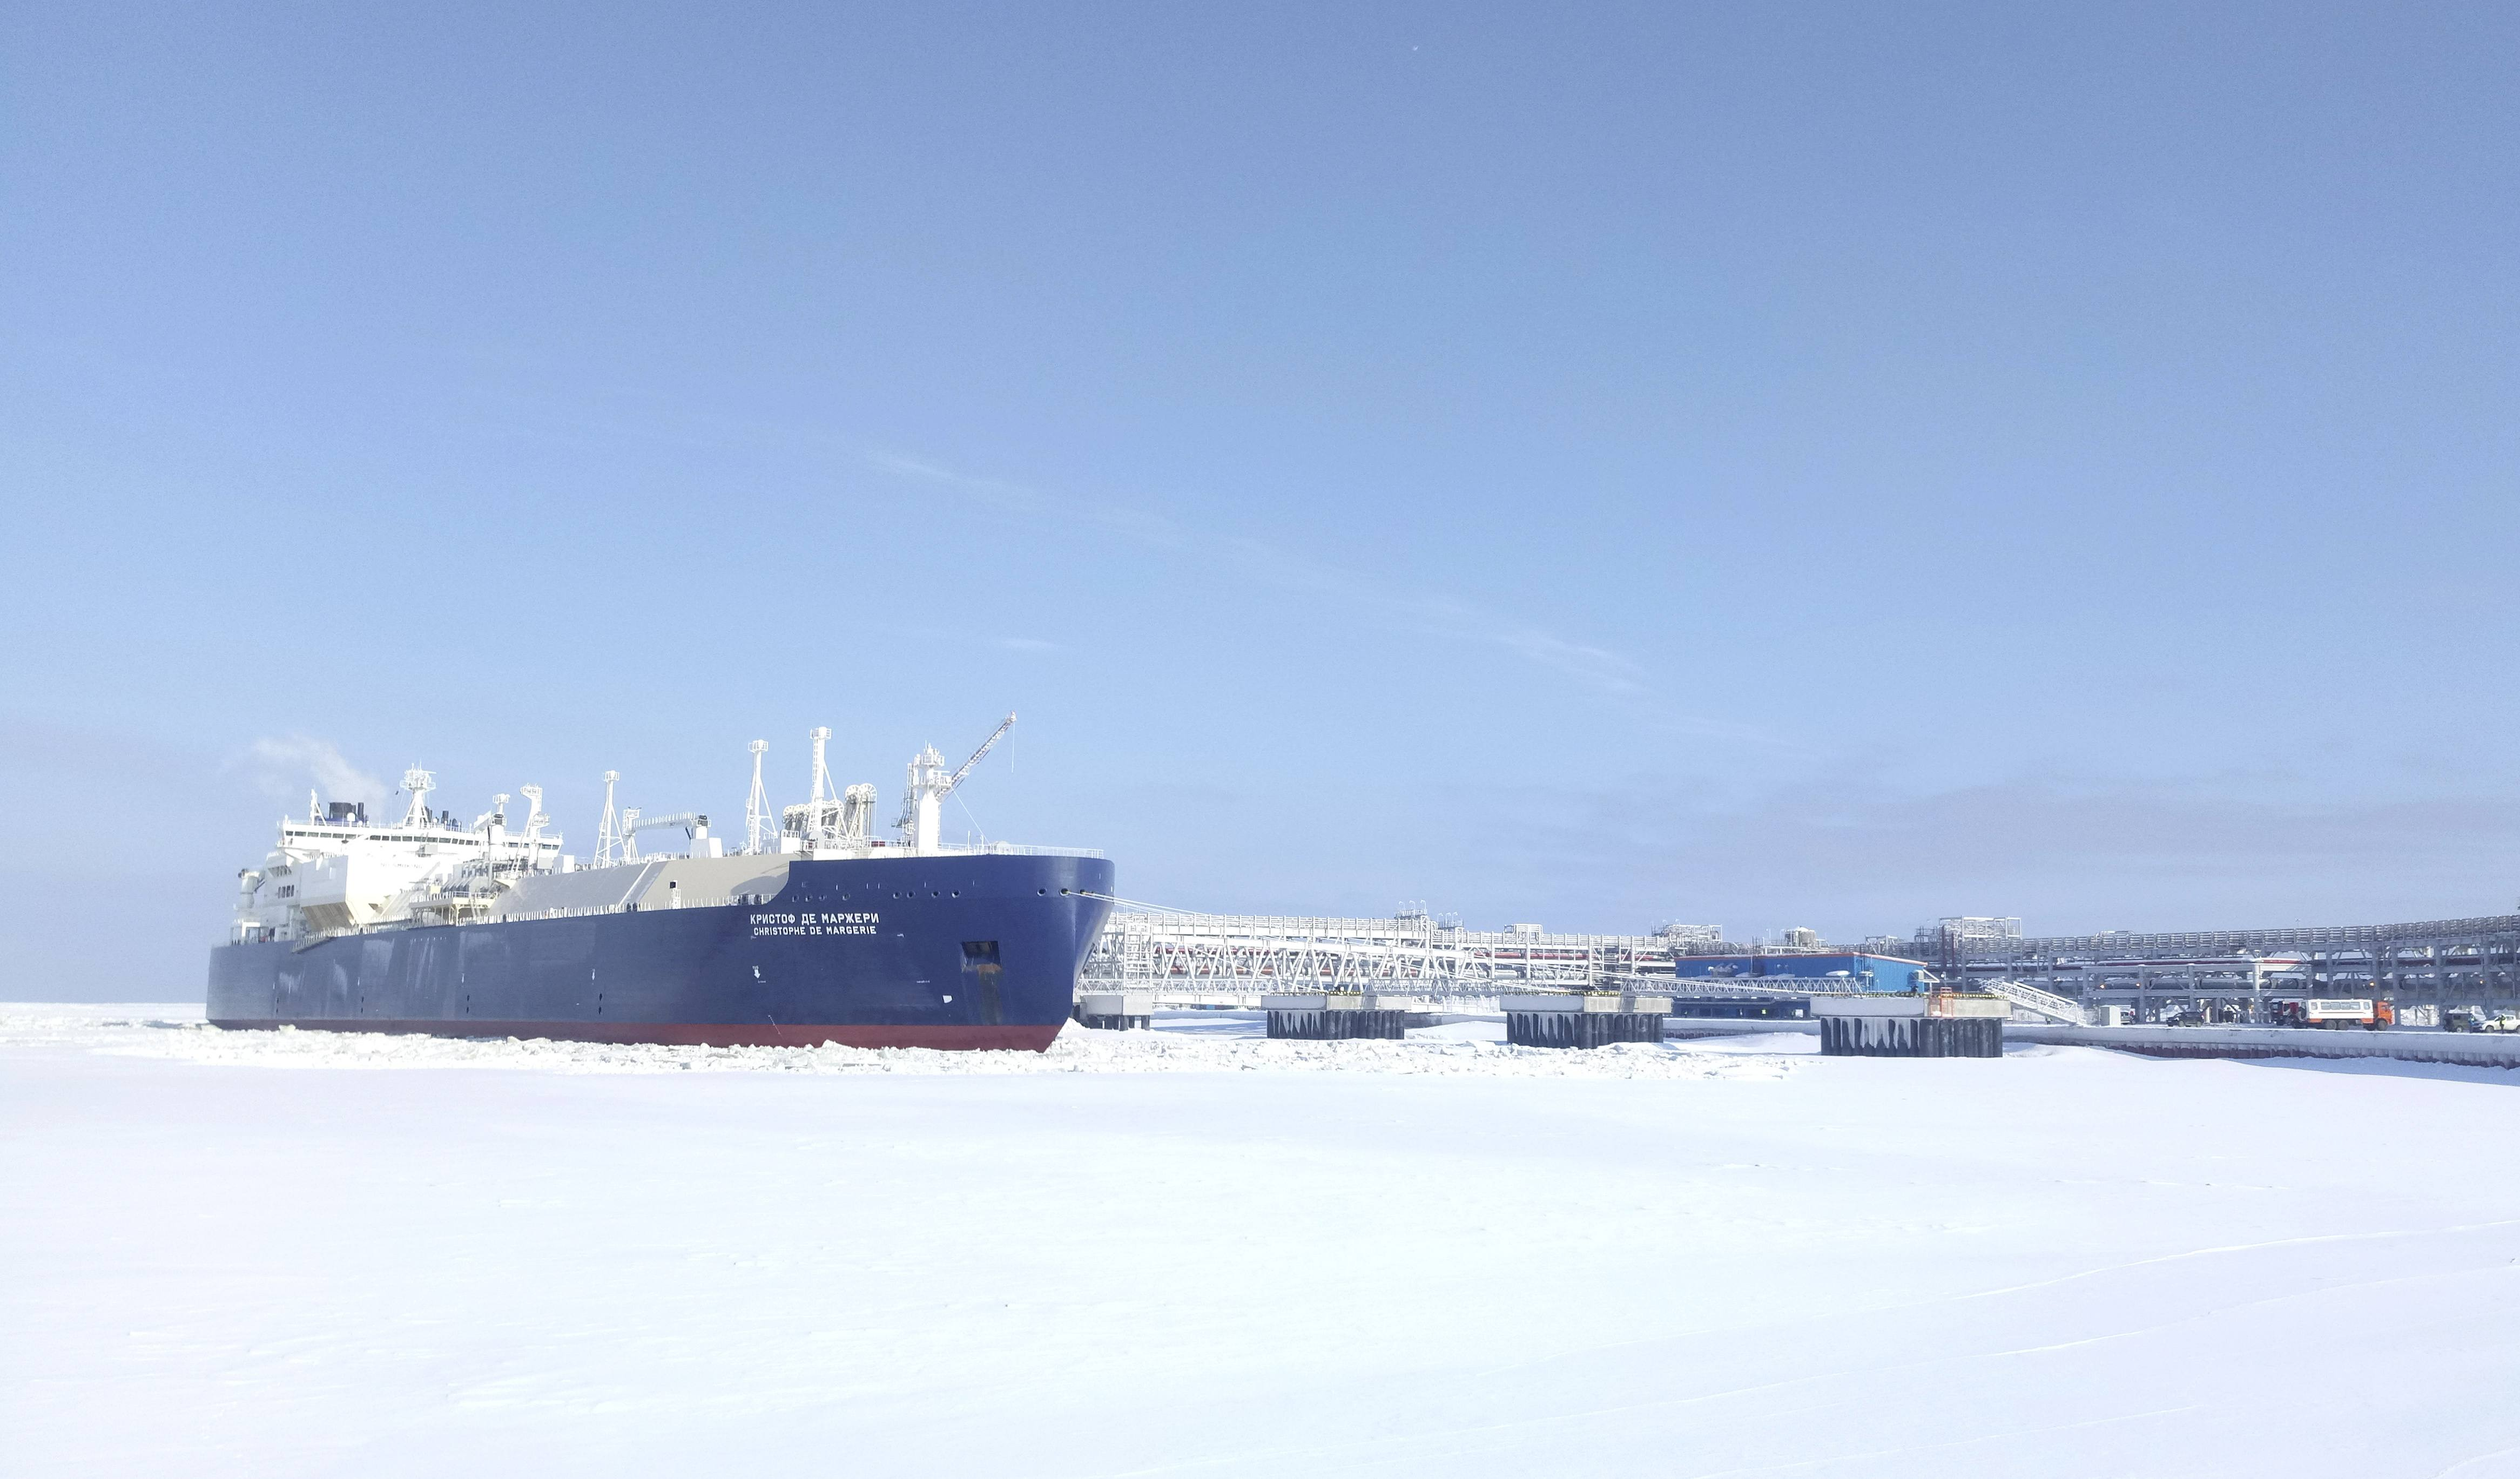 New figures reveal busy shipping season on Northern Sea Route